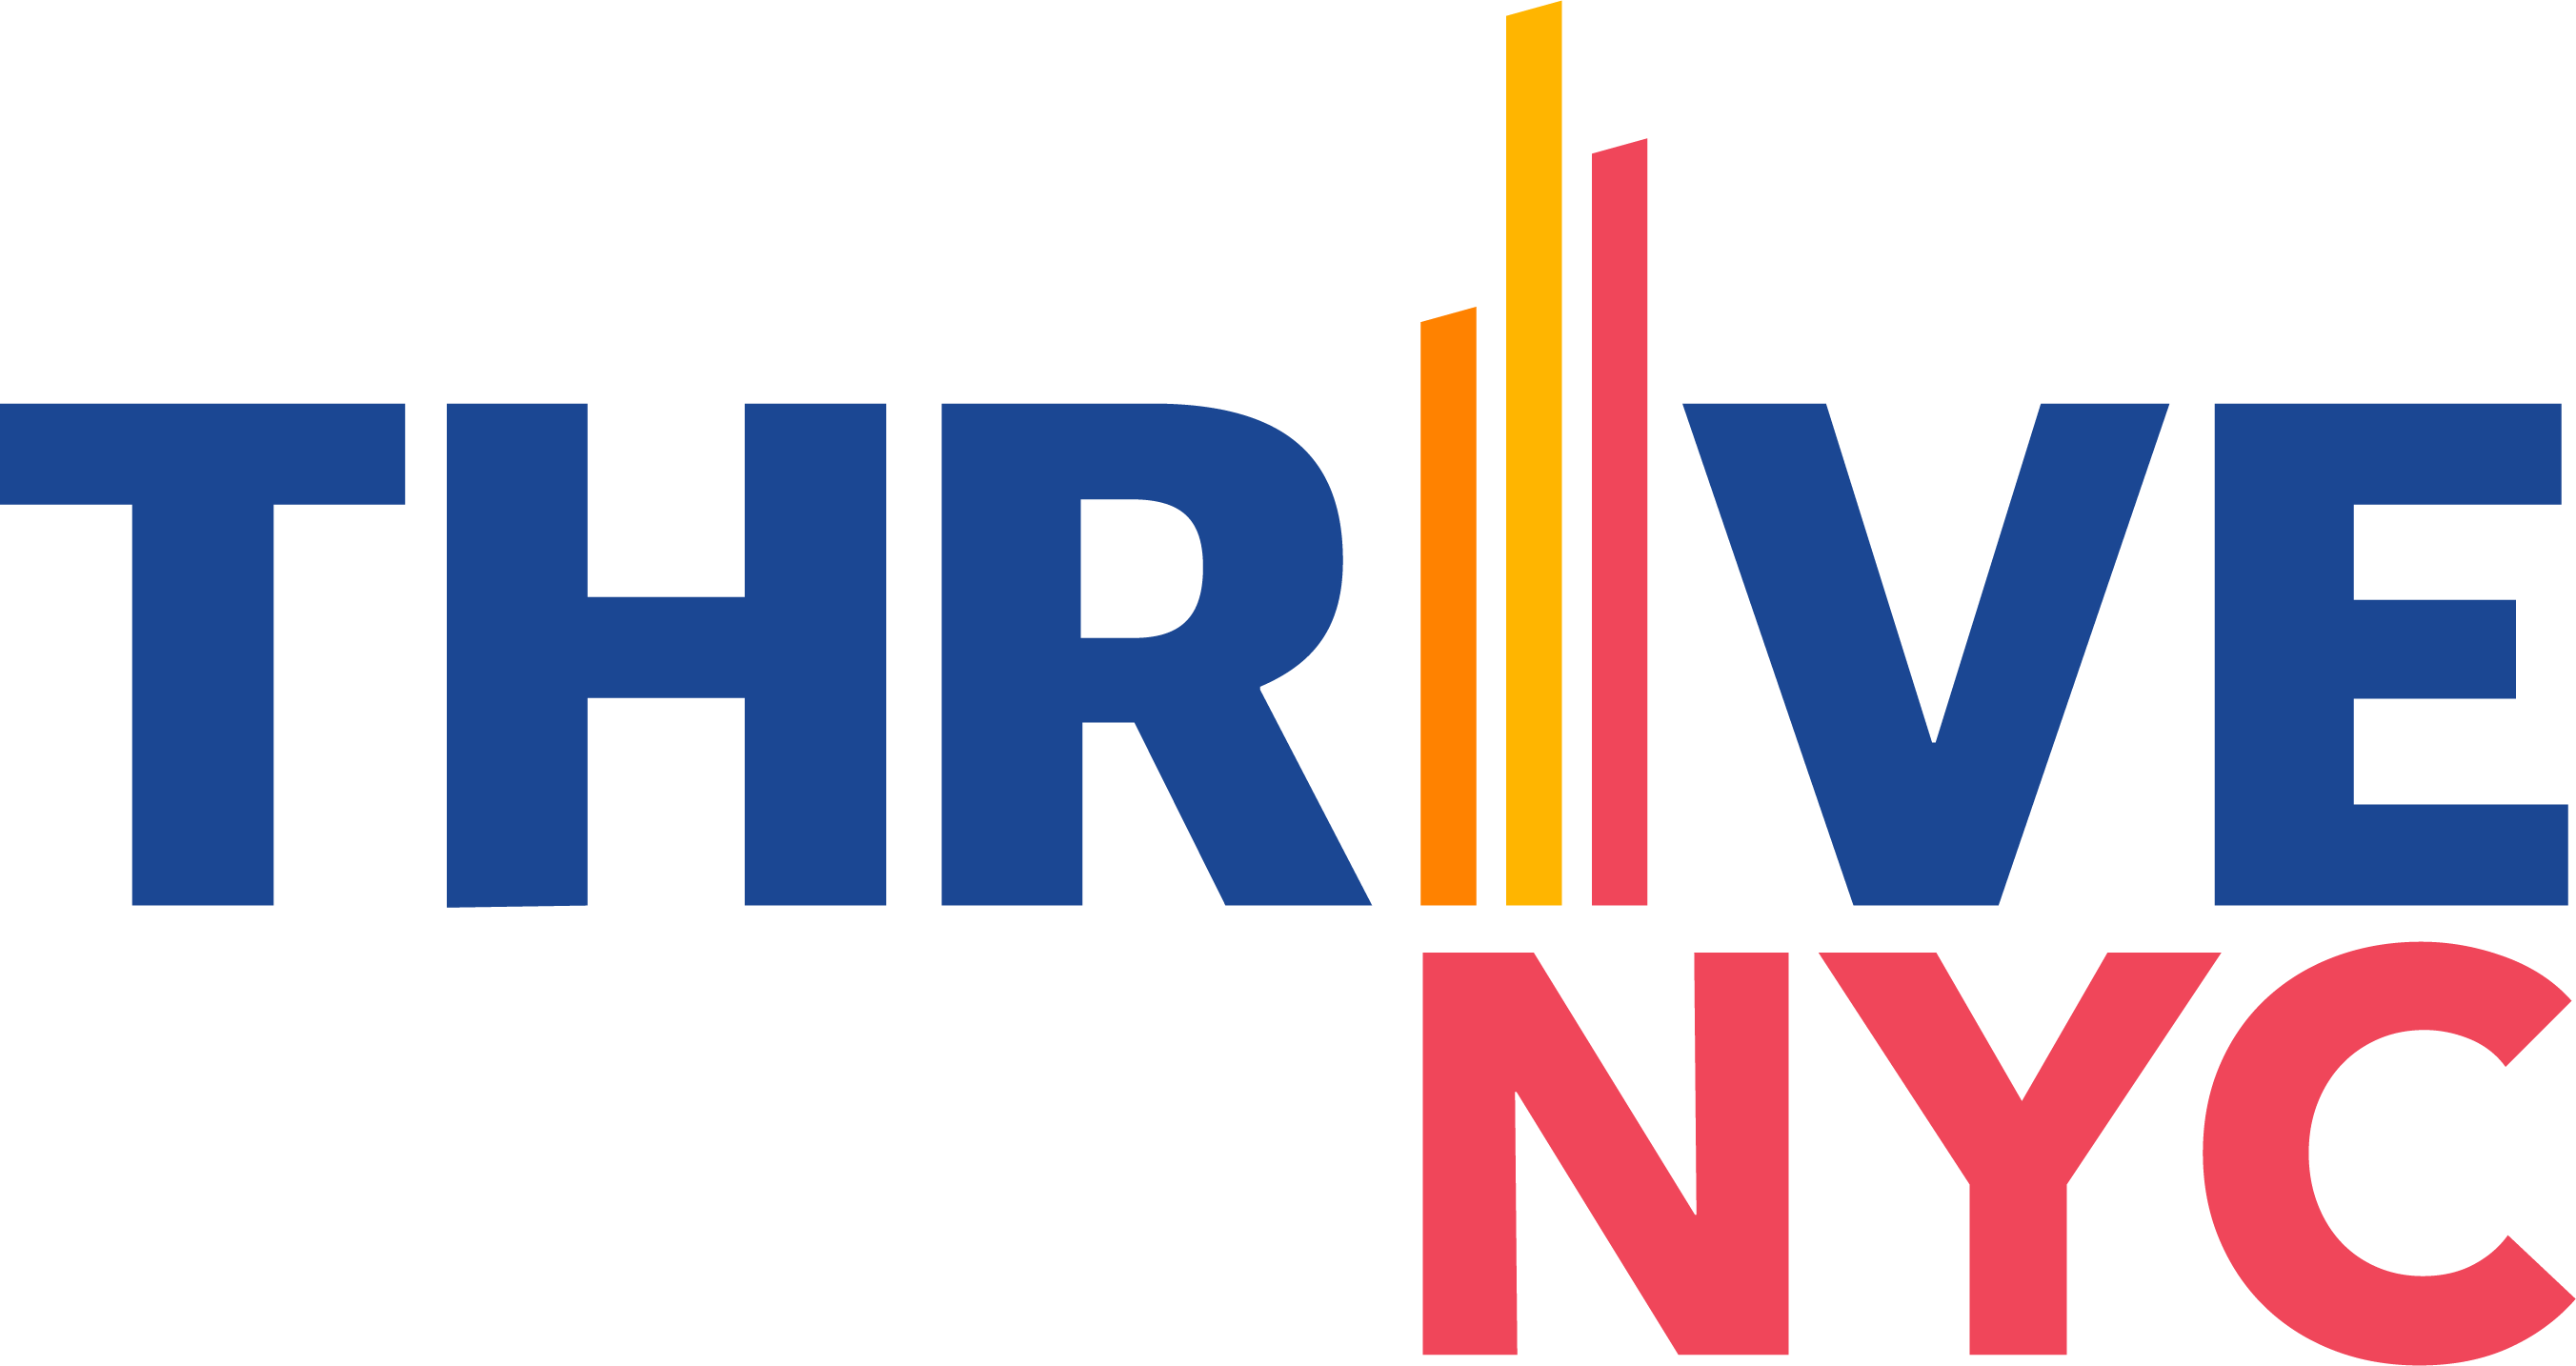 Thrive NYC logo